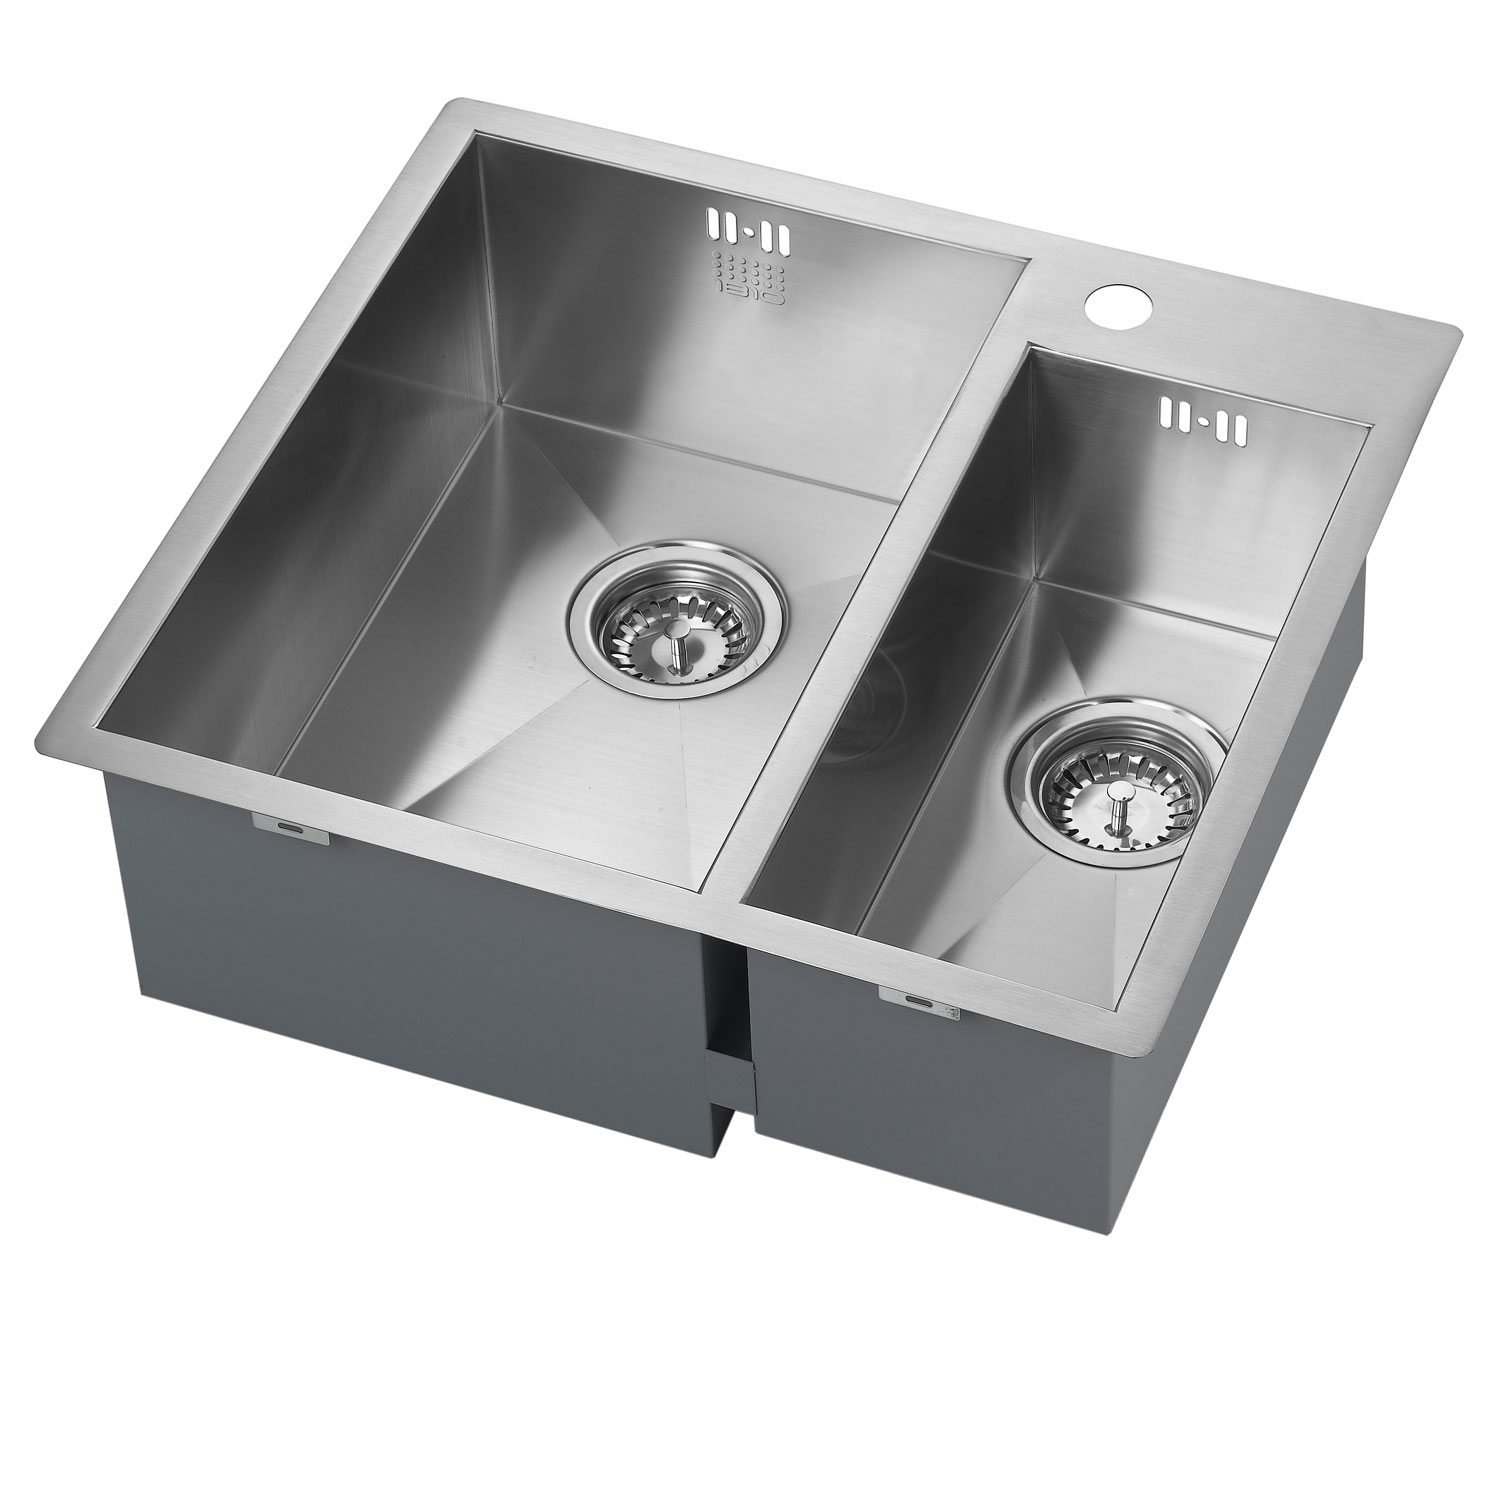 The 1810 Company Zenduo 310/180 I-F 1.5 Bowl Kitchen Sink - Left Hand